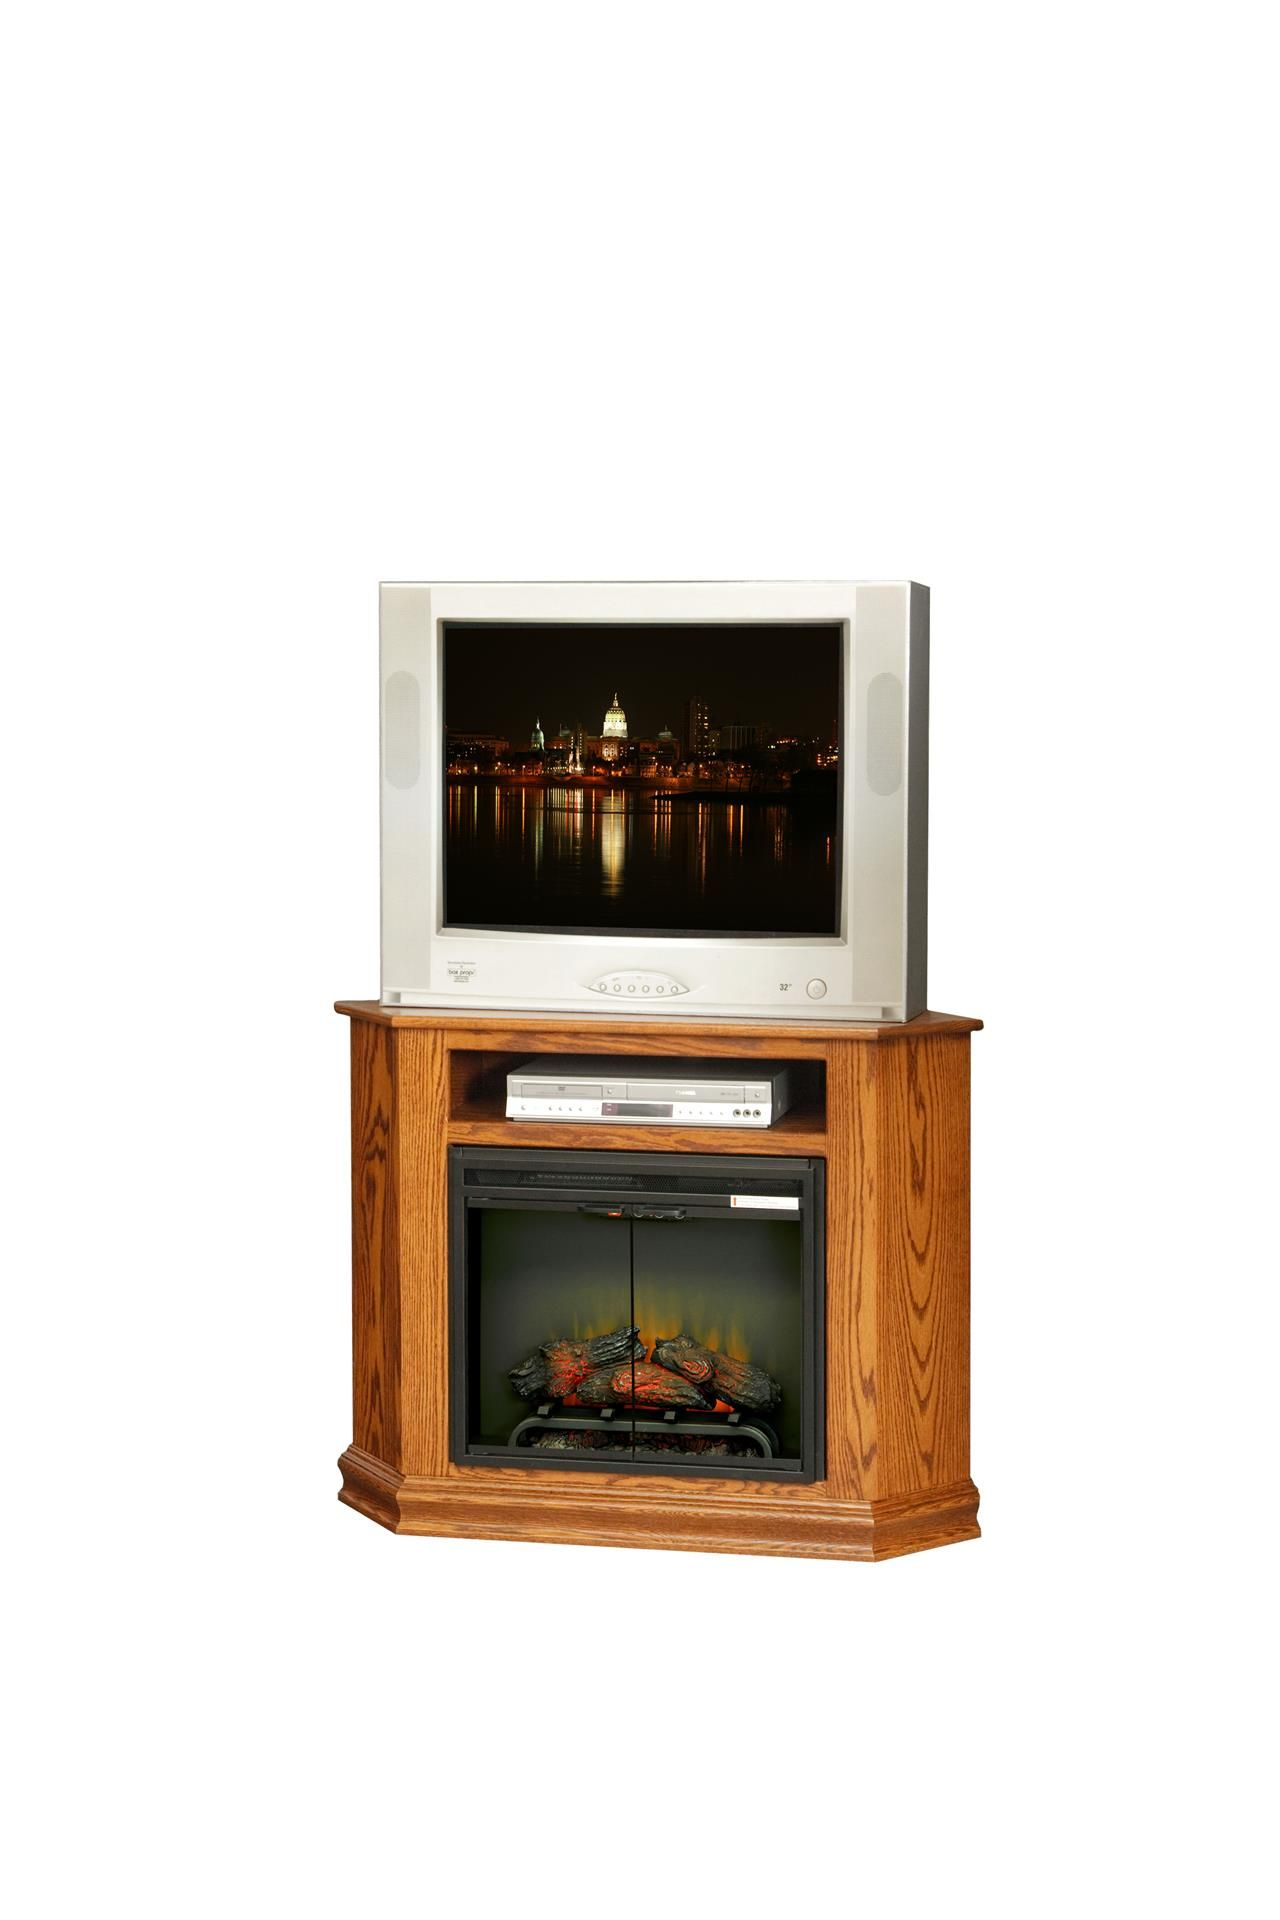 amish corner tv stand with 23 fireplace insert electric rh pinterest co uk amish wood fireplace inserts Amish Infrared Electric Fireplace Insert